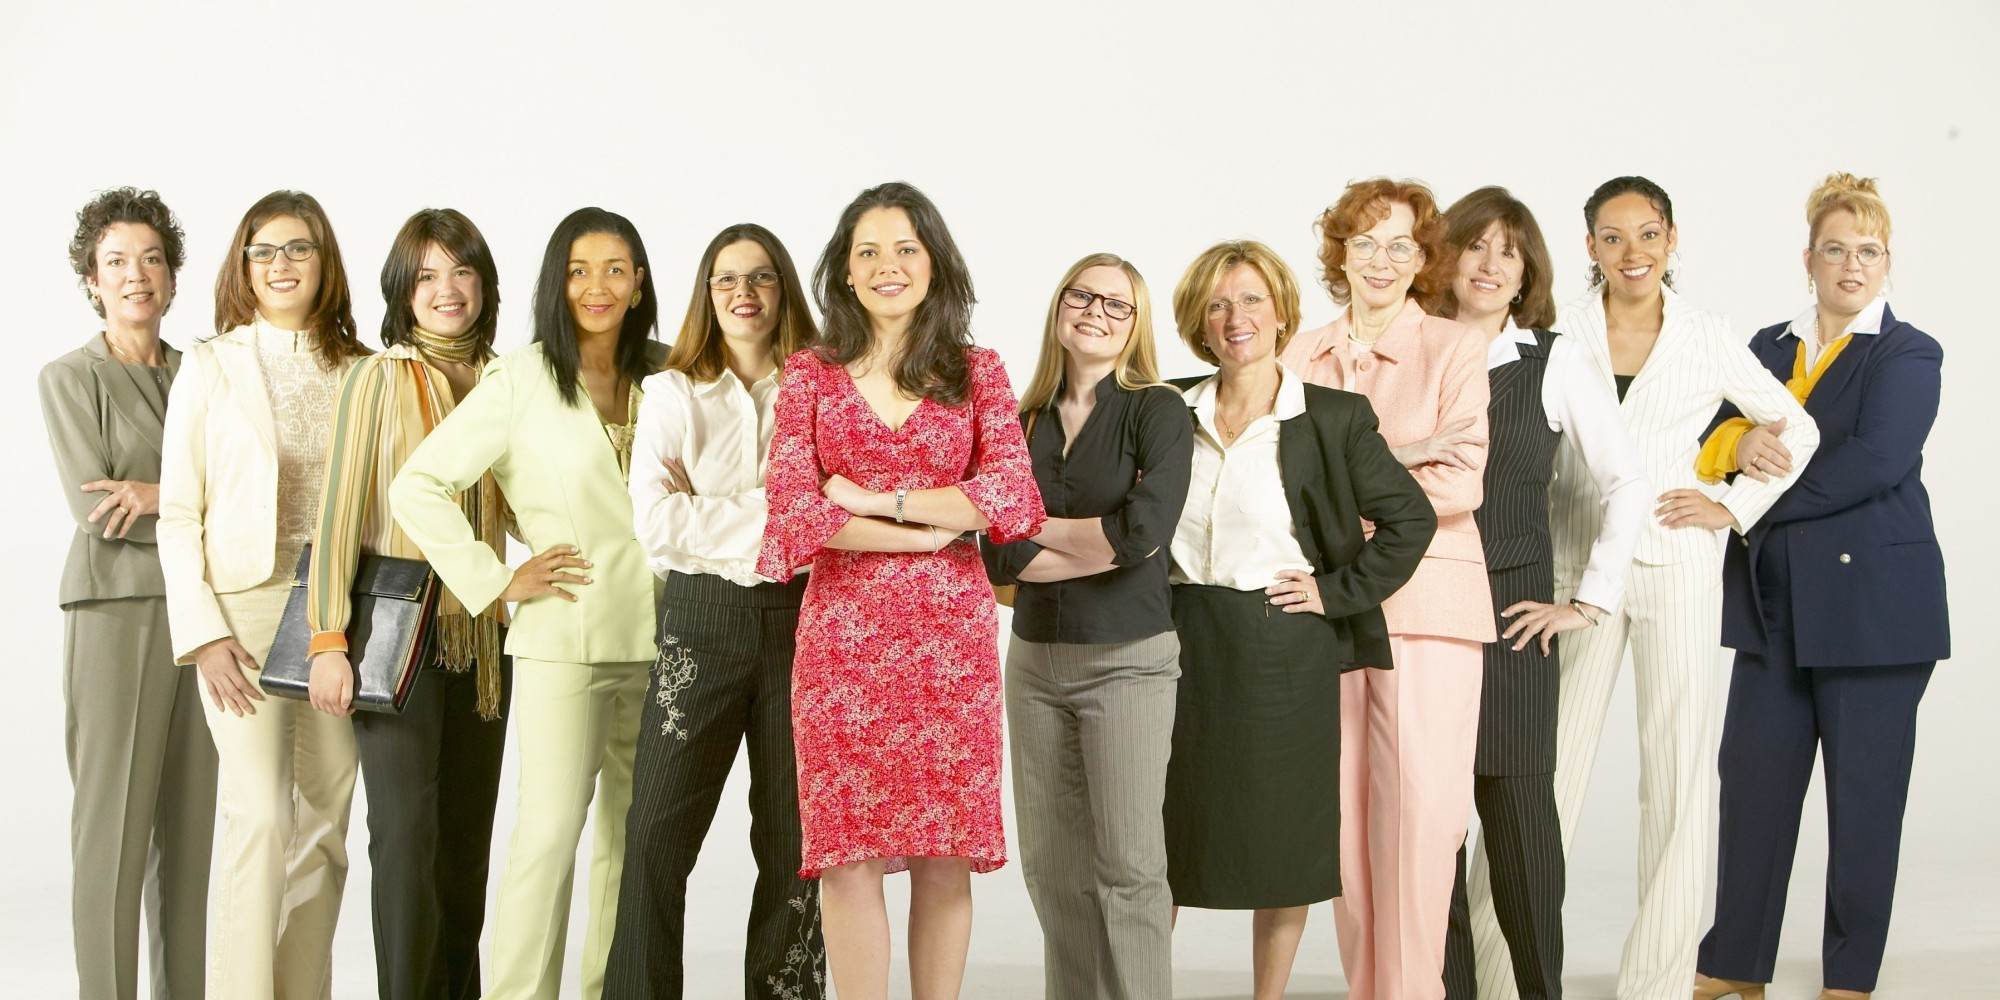 the unprecedented achievement of women in the workplace